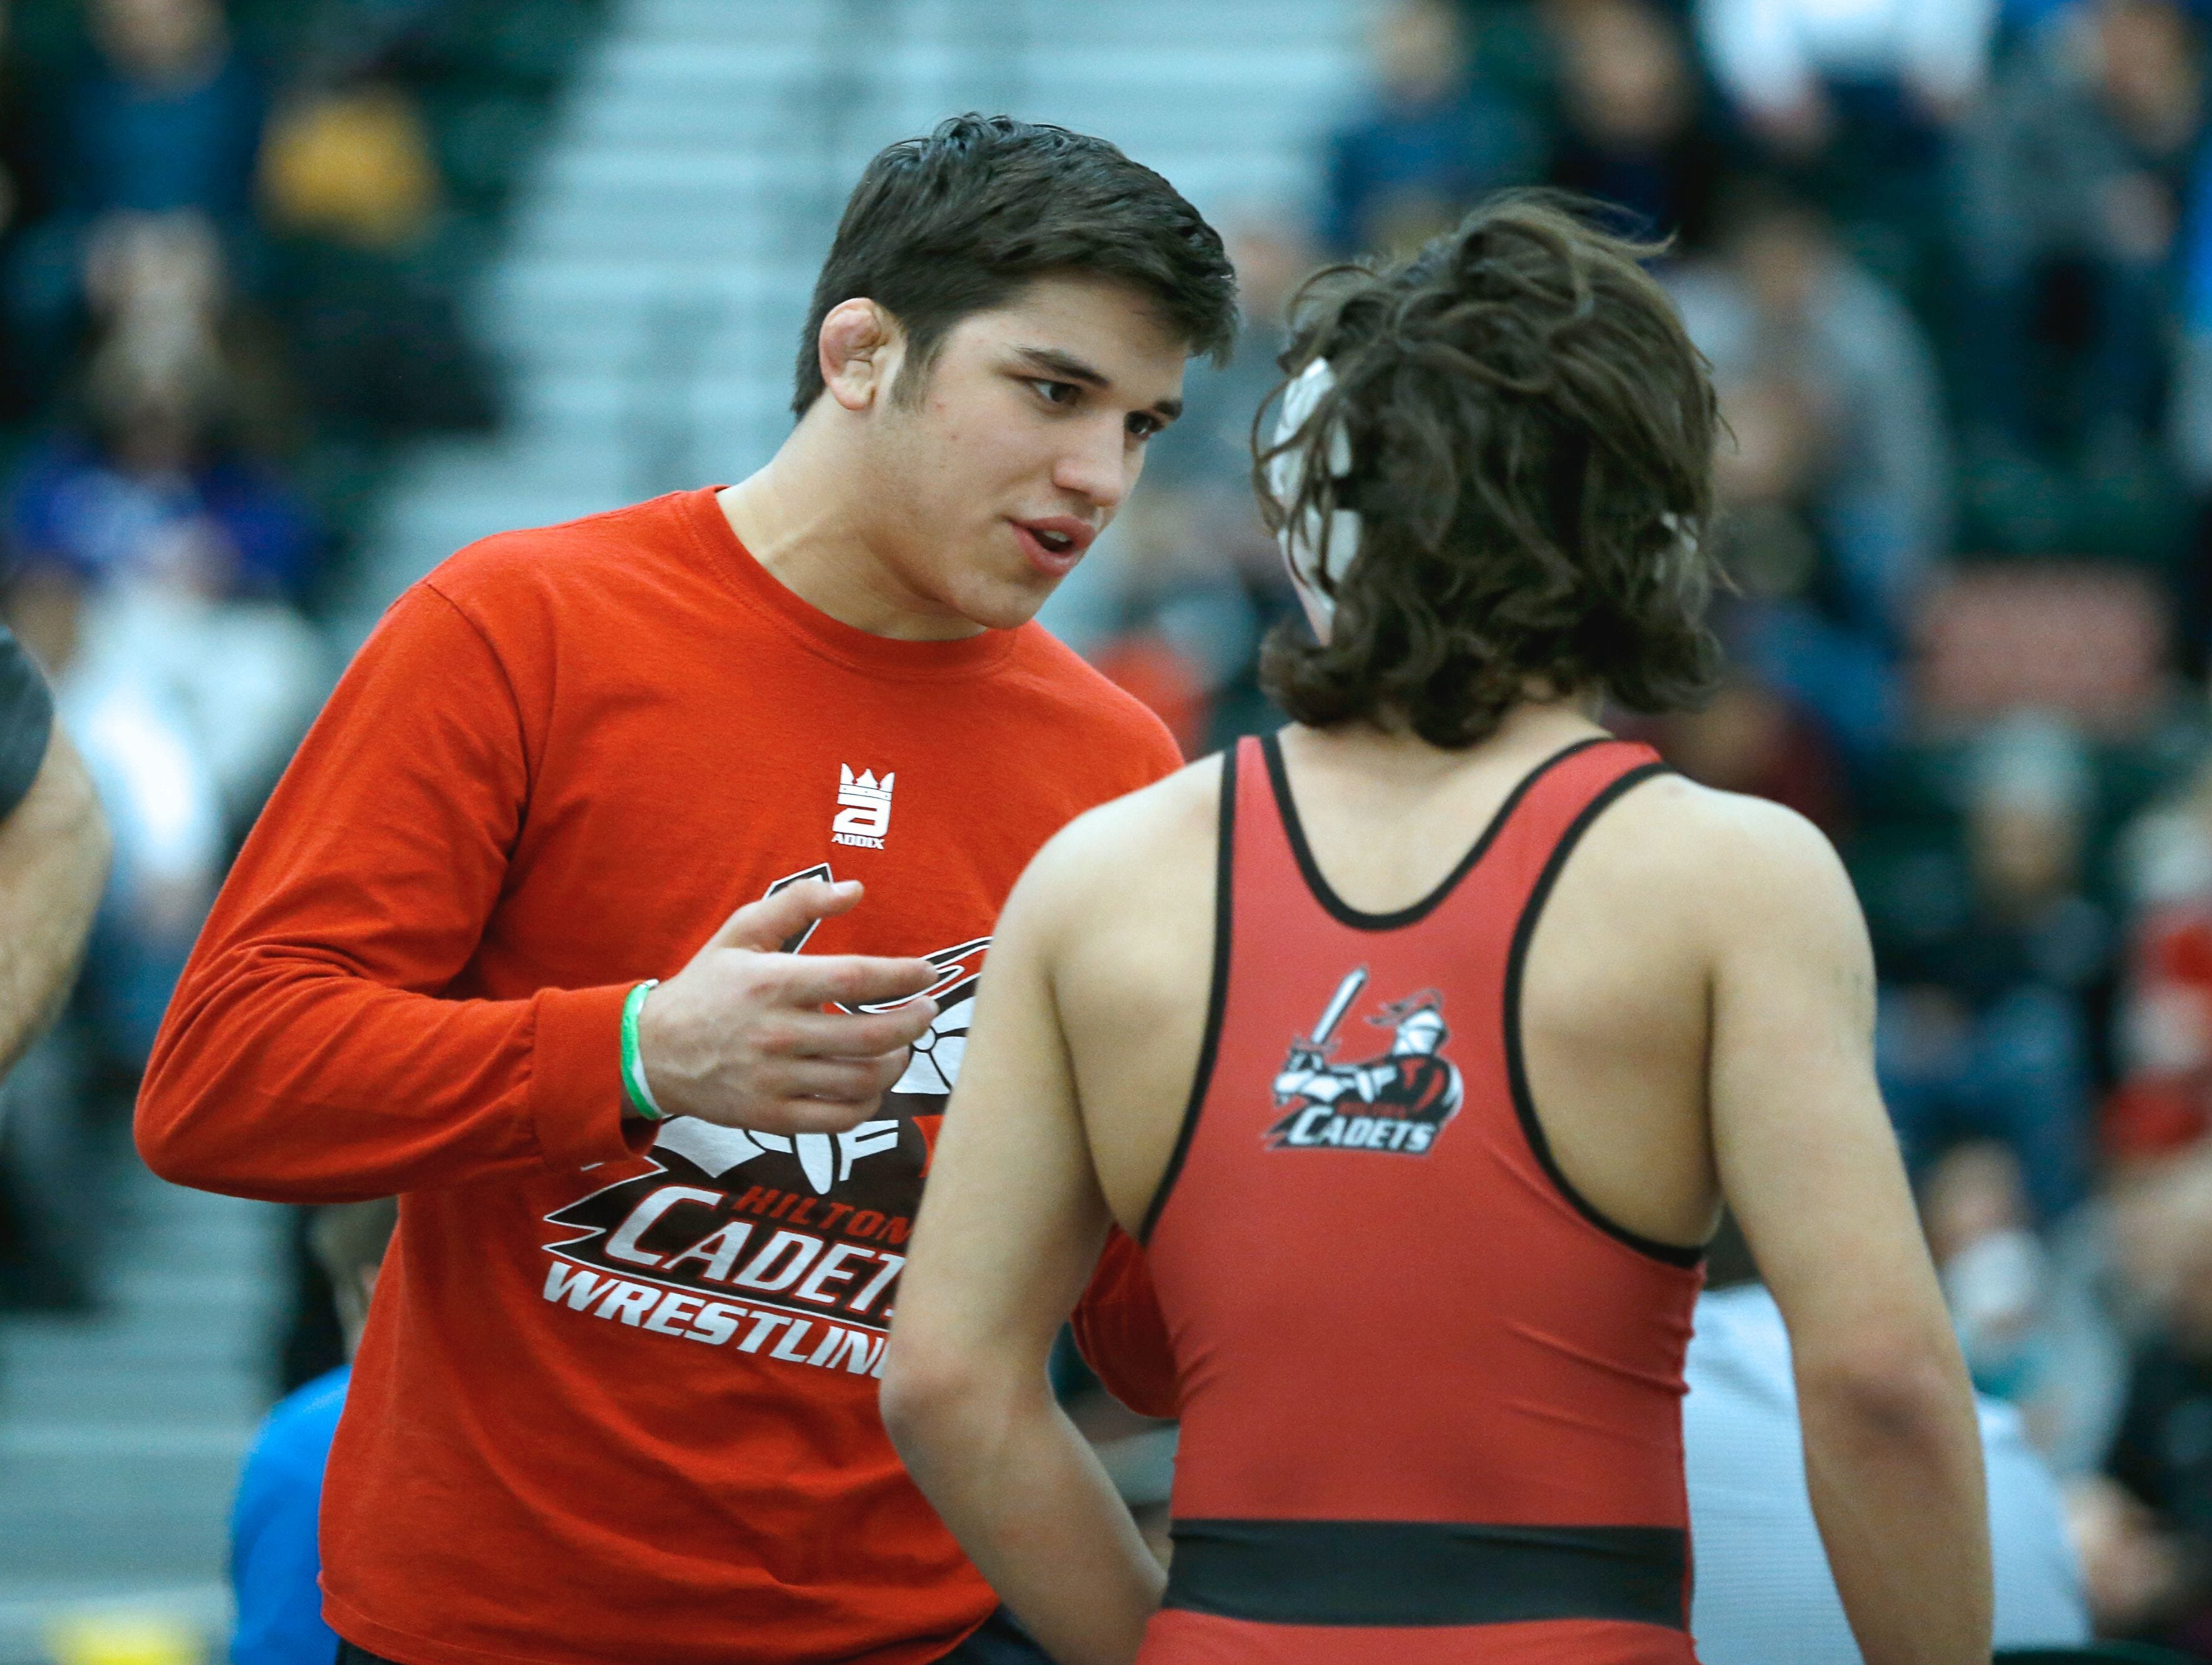 Unable to be on the mats after injuries ended his season, multiple-state champion Yianni Diakomihalis, left, shared his knowledge with brother, Greg, and Hilton teammates in 2017.